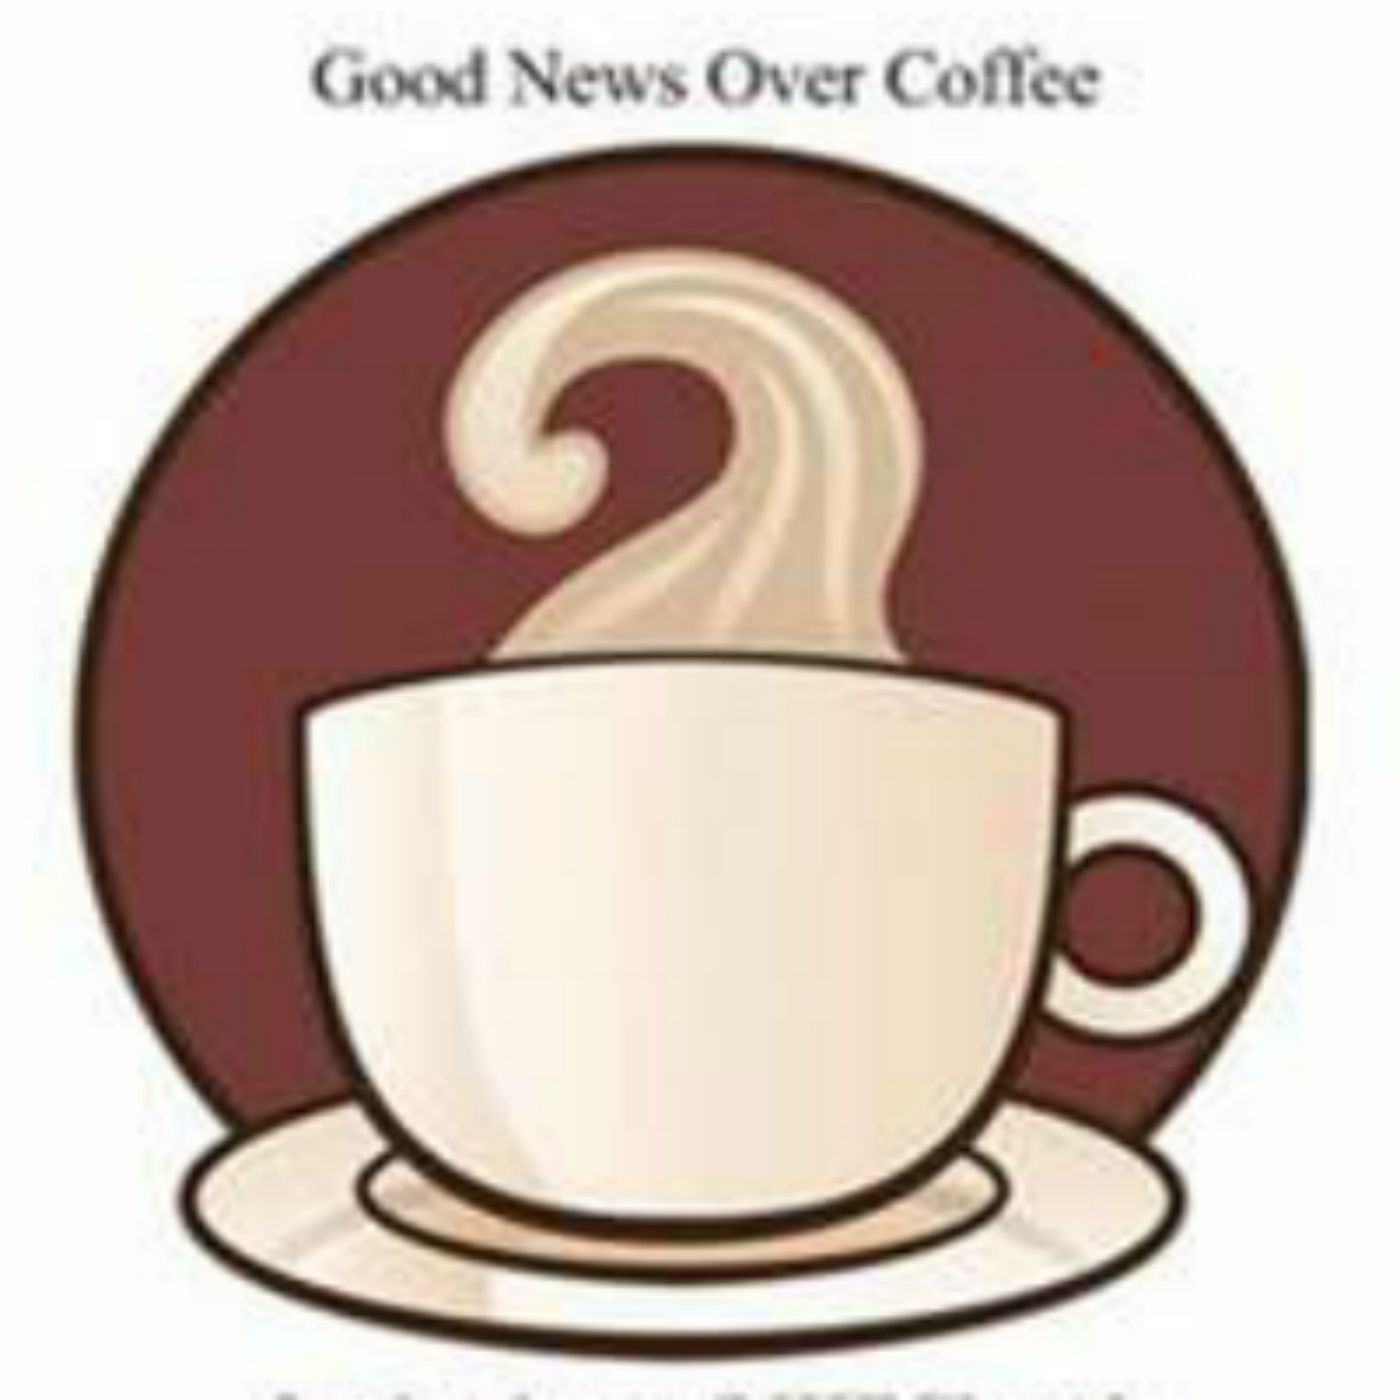 Good News Over Coffee